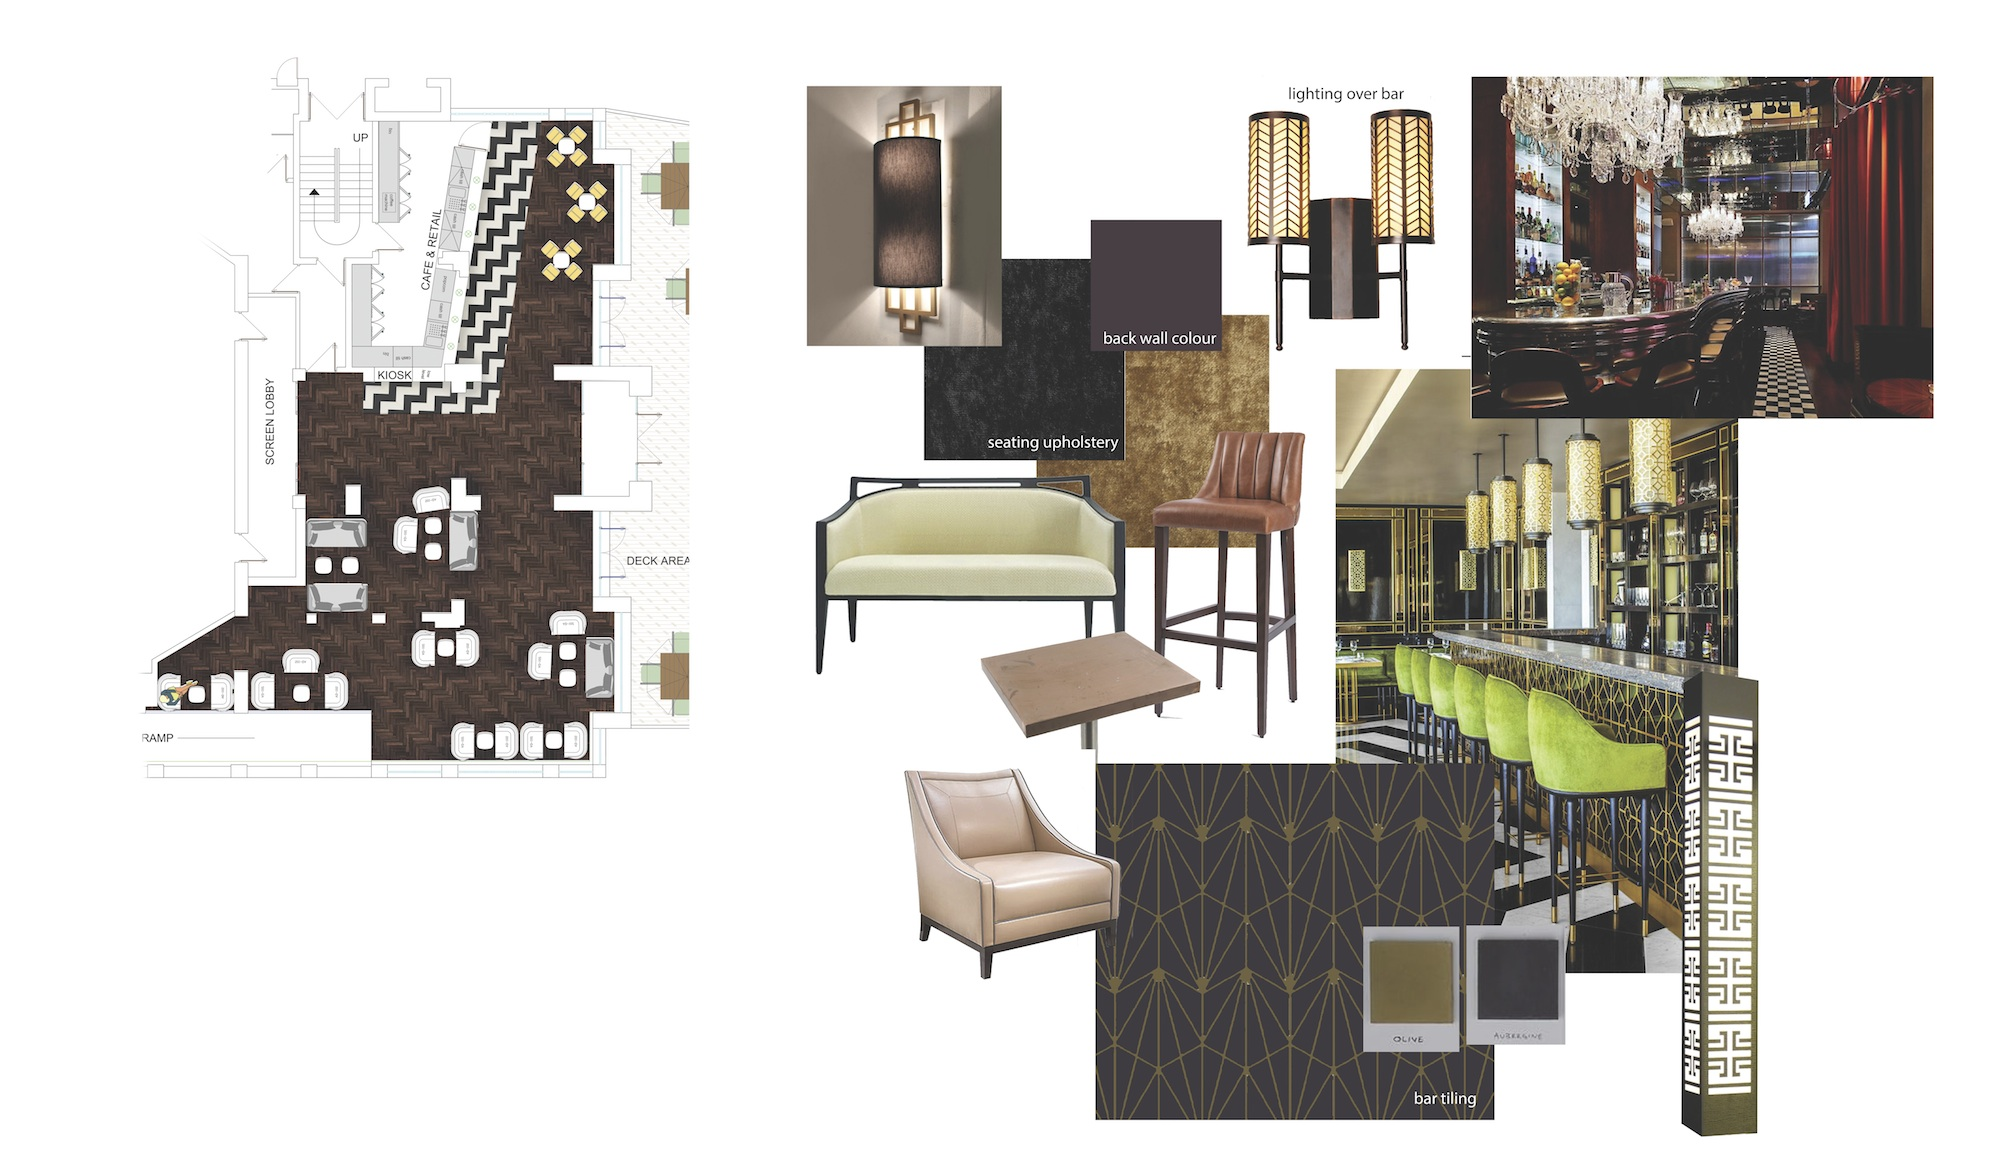 Curzon Knutsford refurbishment mood board - iSpace Design